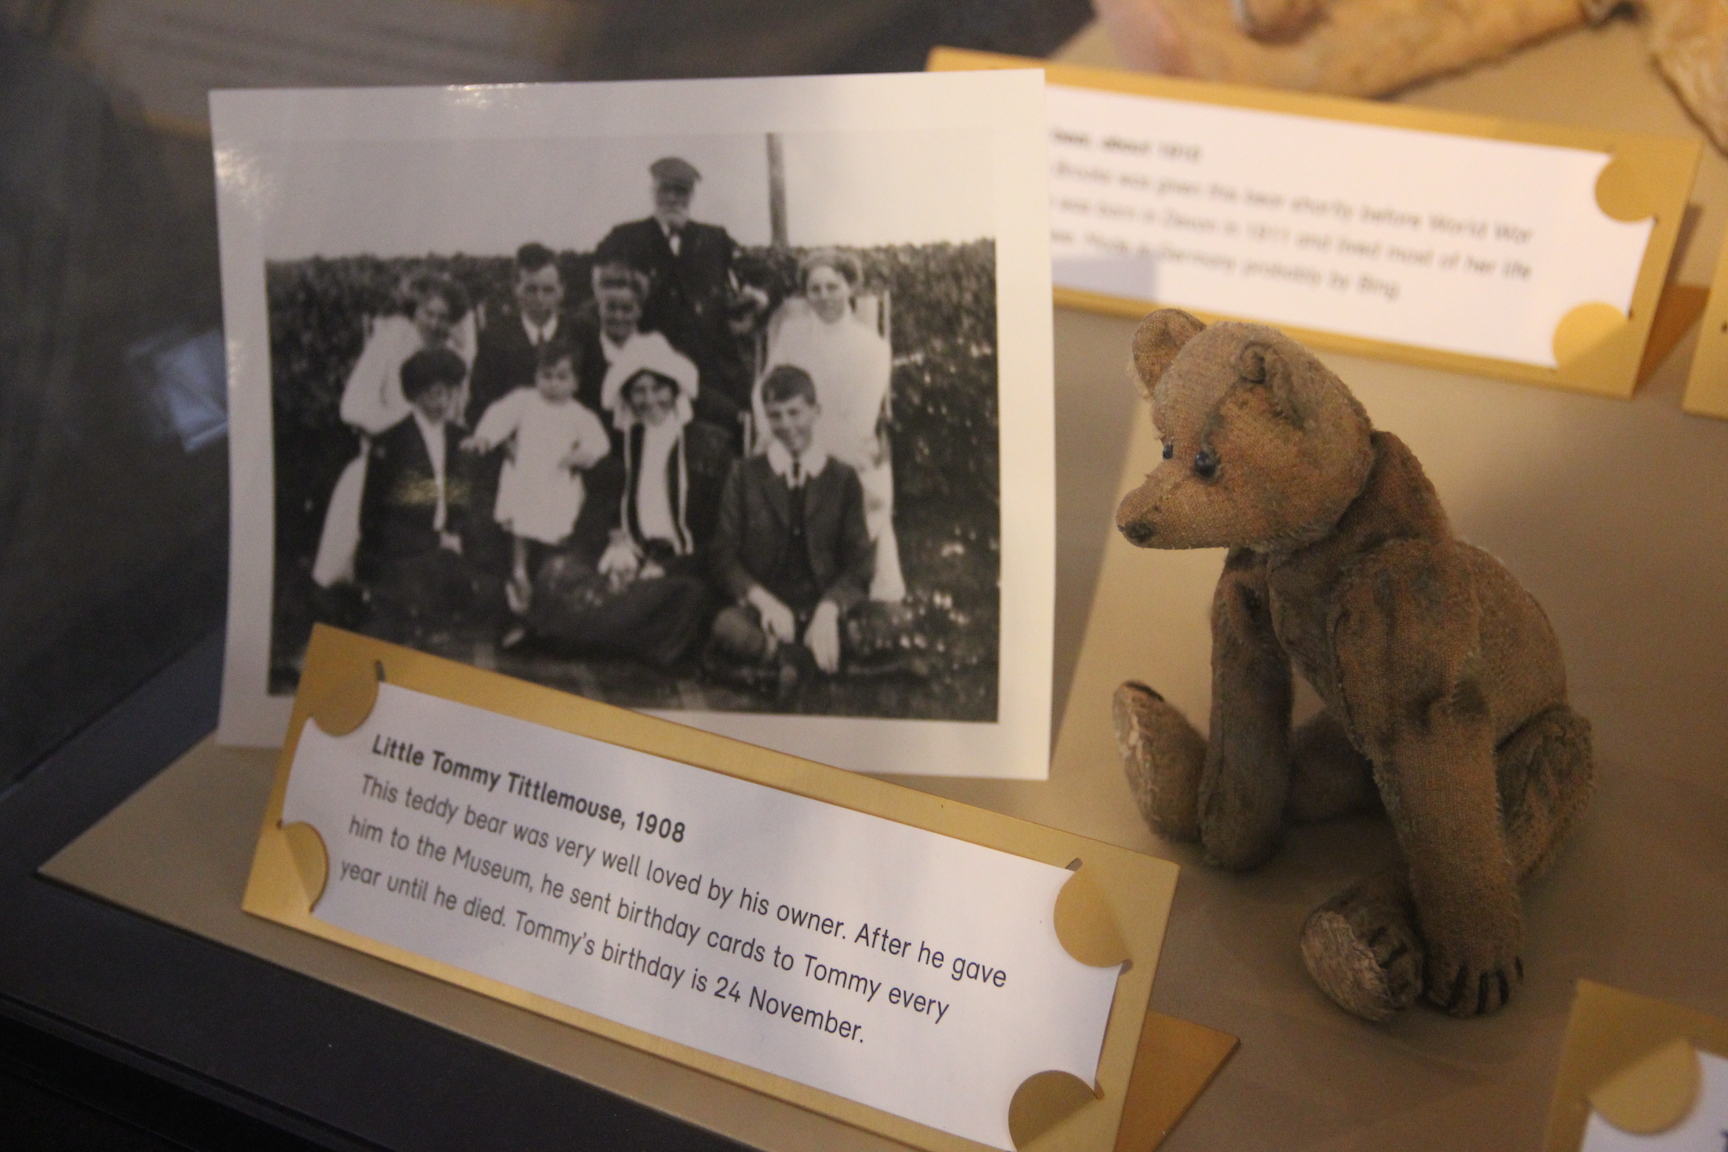 "From the V&A Museum of Childhood. The caption reads: ""Little Tommy Tittlemouse. This teddy bear was very well loved by his owner. After he gave him to the Museum, he sent birthday cards to Tommy every year until he died. Tommy's birthday is 24 November."" (Photo taken by me)."